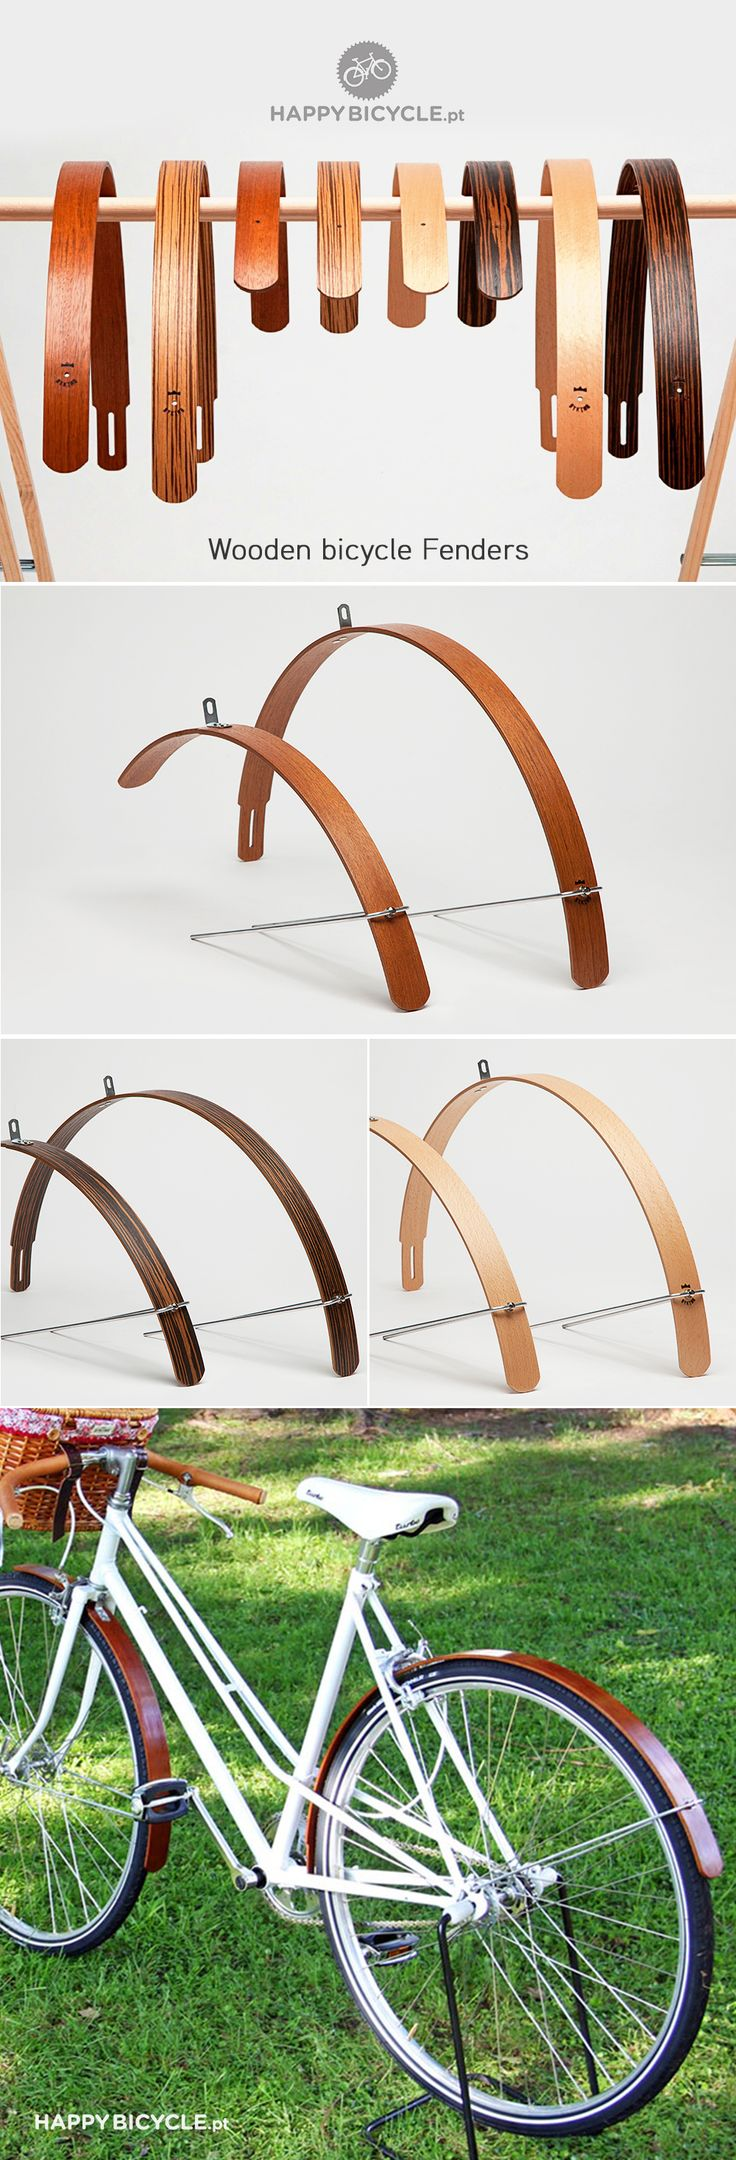 Wooden Bicycle Fenders | by Happy Bicycle Store. #Beautiful #Bicycle.